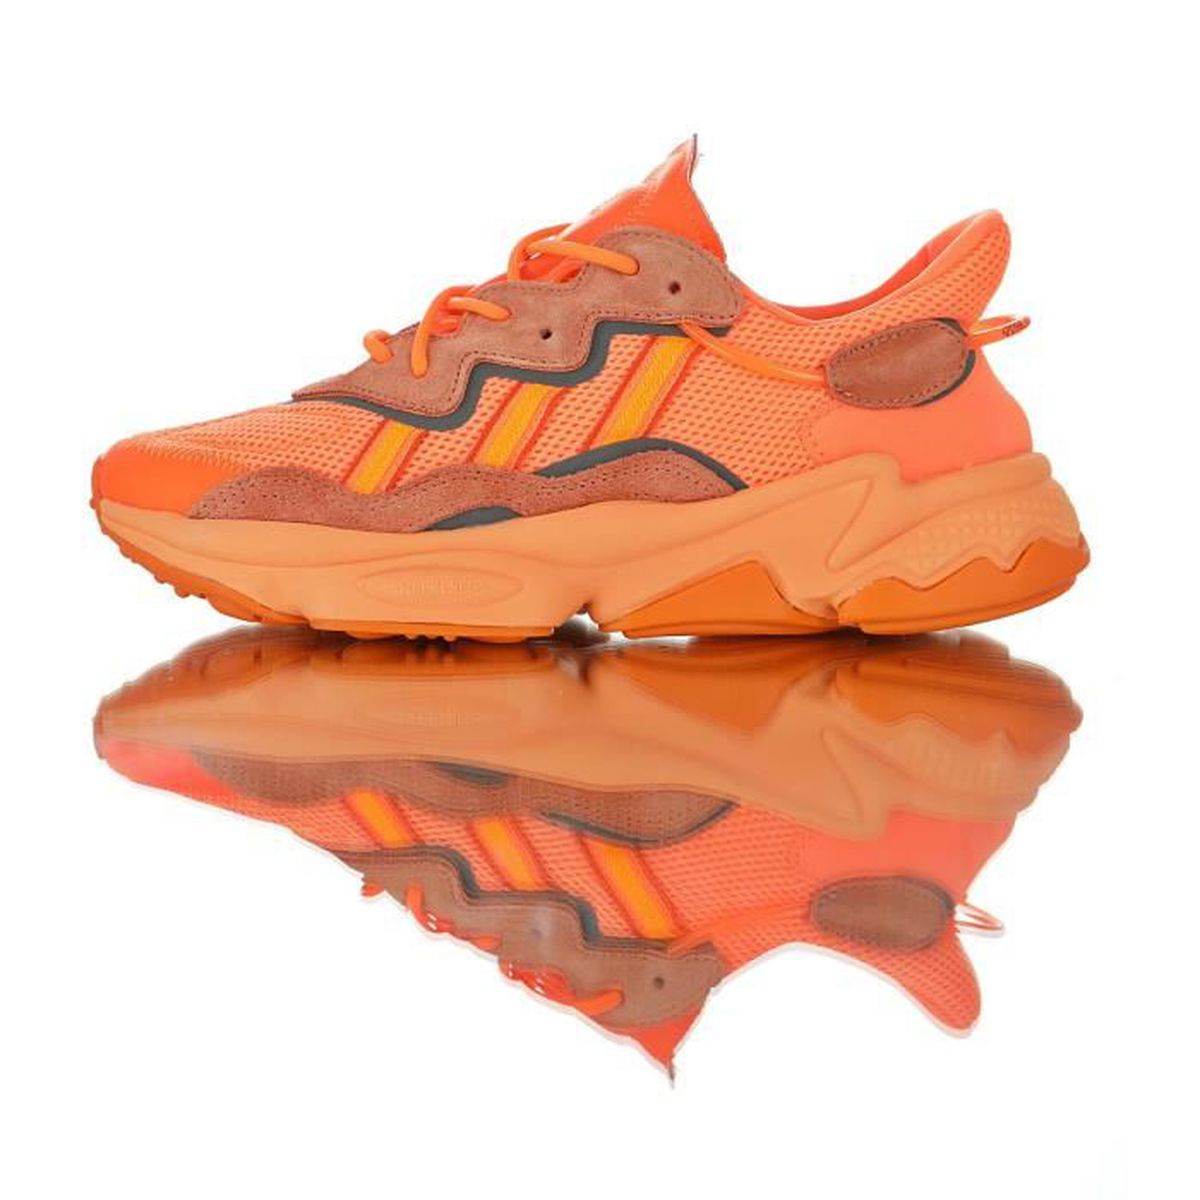 Baskets Adidas Ozweego adiPRENE Orange Homme Femme Running ...